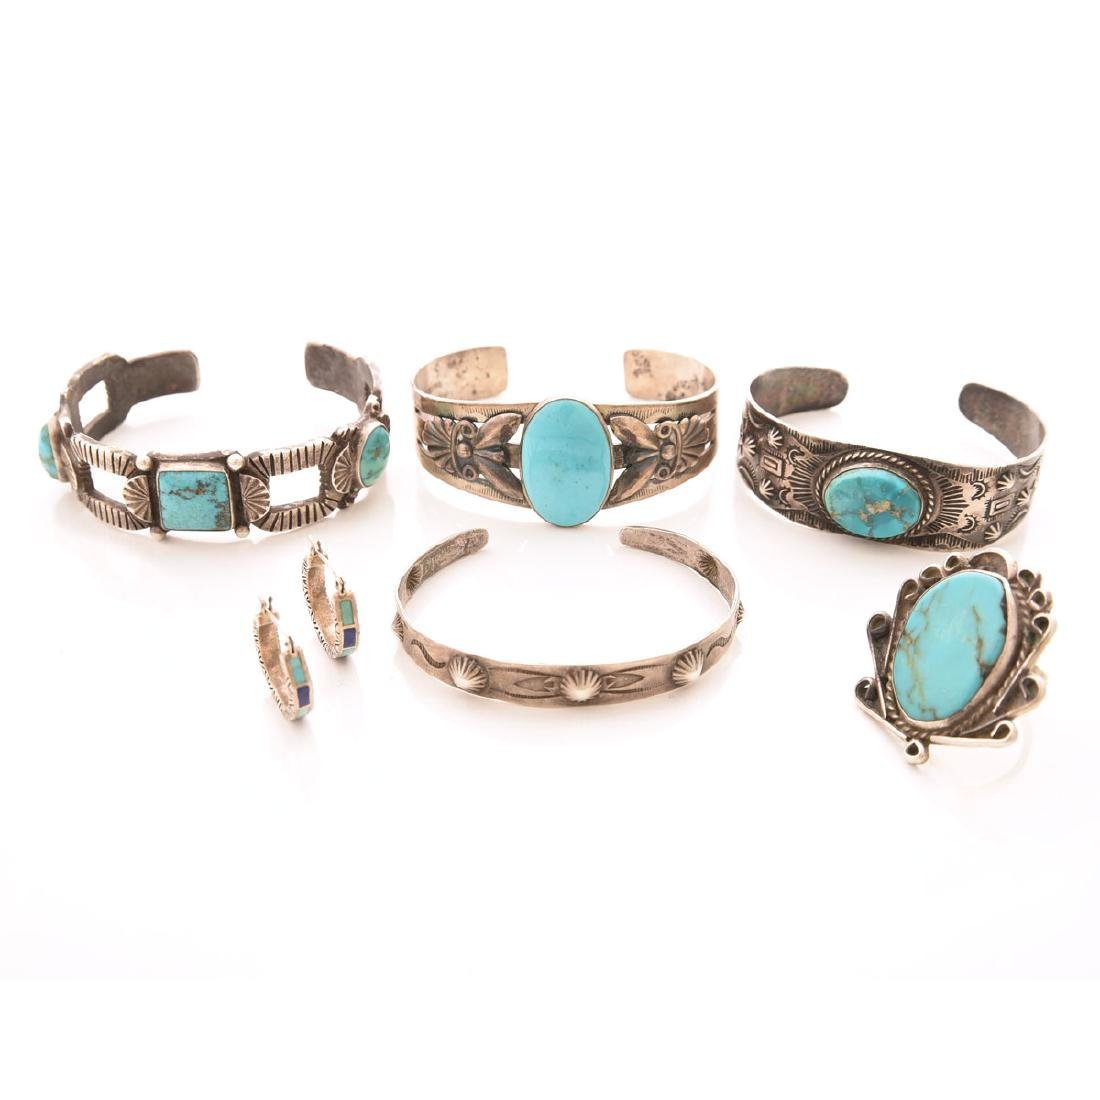 Collection of Native American Jewelry Items.